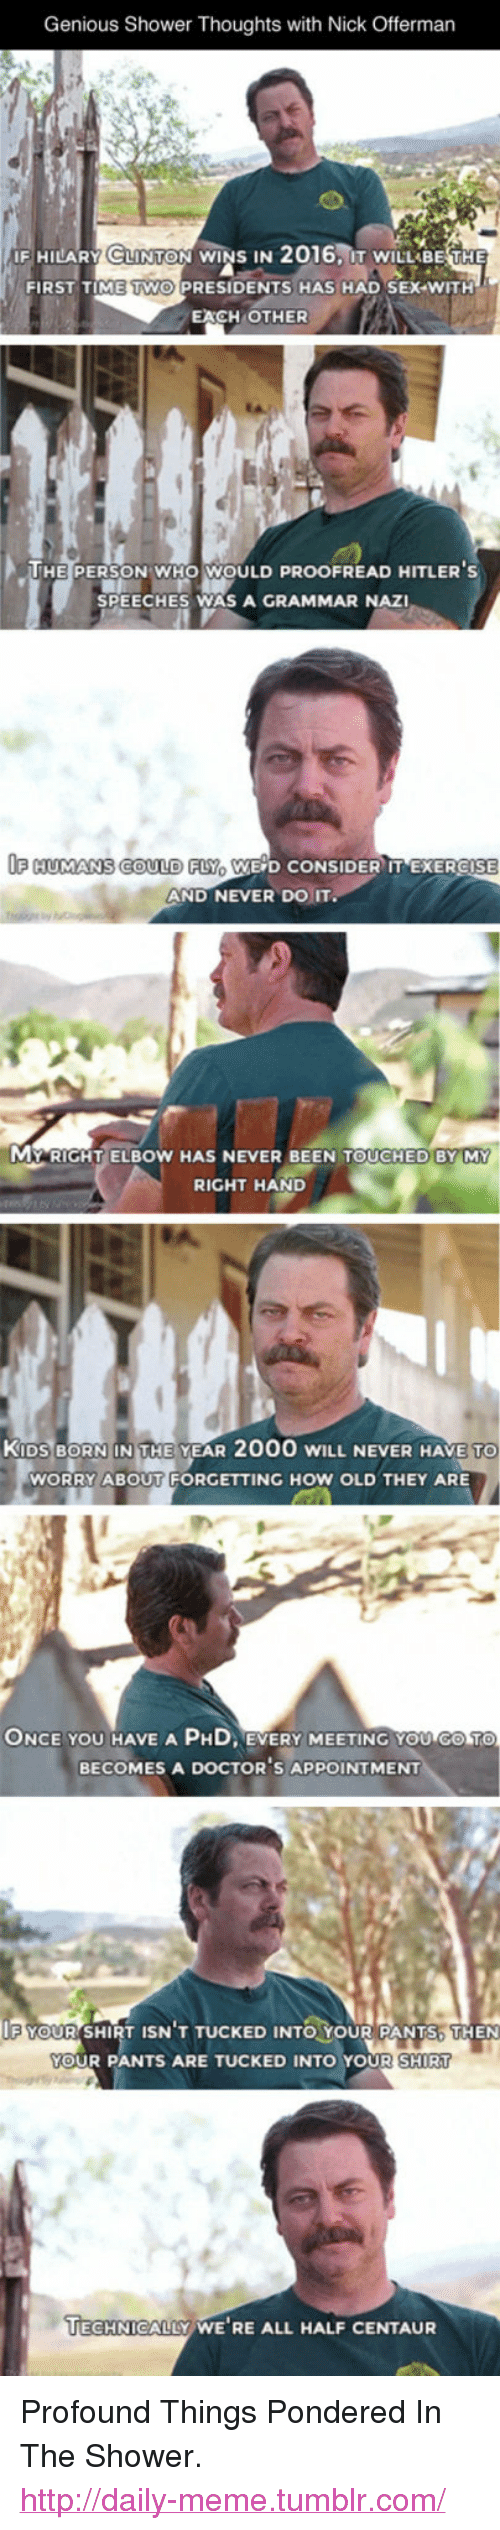 "Doctor, Meme, and Nick Offerman: Genious Shower Thoughts with Nick Offerman  İF HILARY LINTON wiNS IN 2016: IT wiLLABE THE  FIRST TIME TWO PRESIDENTS HAS HAD SEX WITH  EACH OTHER  HE PERSON WHO WOULD PROOFREAD HITLERS  SPEECHES WAS A GRAMMAR NAZI  F HUMANS COULD FLY WE D CONSIDER IT EXERCISE  AND NEVER DO IT.  MY RIGHT ELBOW HAS NEVER BEEN TOUCHED BY MY  RIGHT HAND  KIDS BORN INI T  HE YEAR 2000 wILL NEVER HAVE TO  WORRY ABOUT FORGETTING HOW OLD THEY ARE  ONCE  YOU  HAVE  A  PHD EVERY MEETING YOU GO TO  BECOMES A DOCTOR S APPOINTMENT  F YOUR SHIRT I  ISN T TUCKED INTO You  R PANTS, THEN  YOUR PANTS ARE TUCKED INTO YOUR SHIRT  ECHNICALLY WE RE ALL HALF CENTAUR <p>Profound Things Pondered In The Shower.<br/><a href=""http://daily-meme.tumblr.com""><span style=""color: #0000cd;""><a href=""http://daily-meme.tumblr.com/"">http://daily-meme.tumblr.com/</a></span></a></p>"